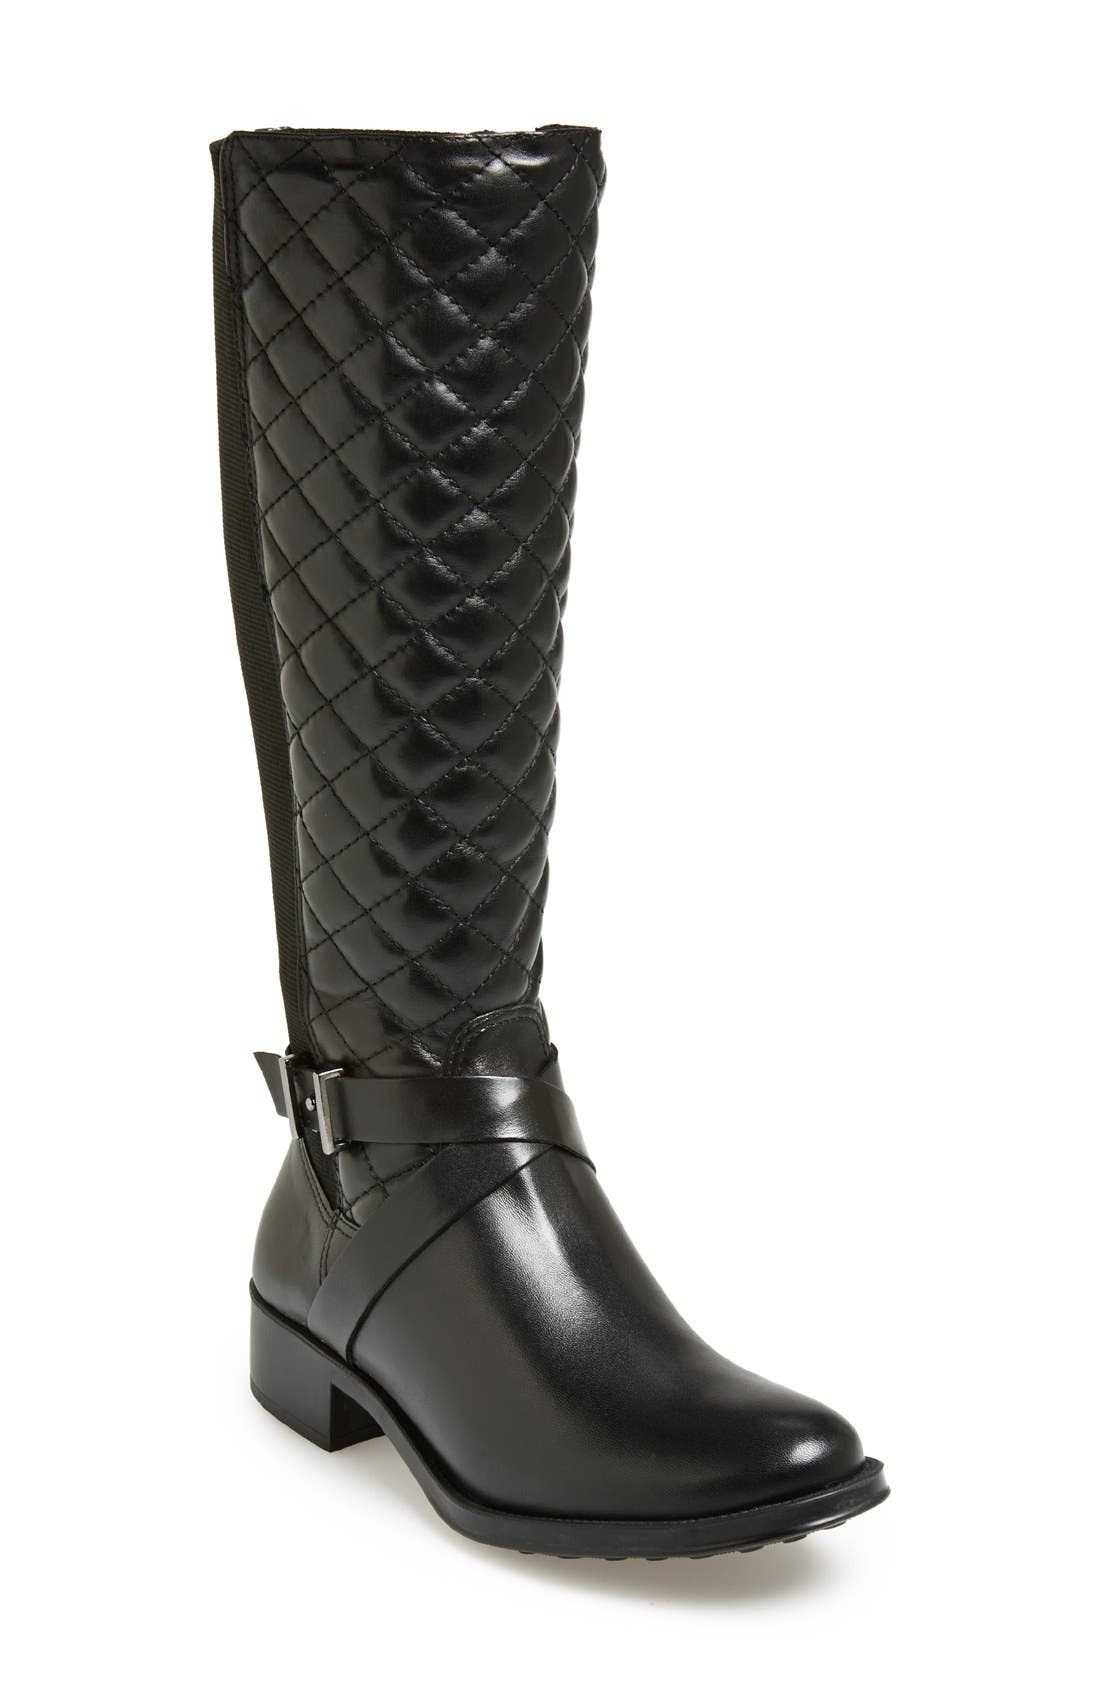 Main Image - André Assous 'Seabiscuit' Waterproof Quilted Boot (Women)